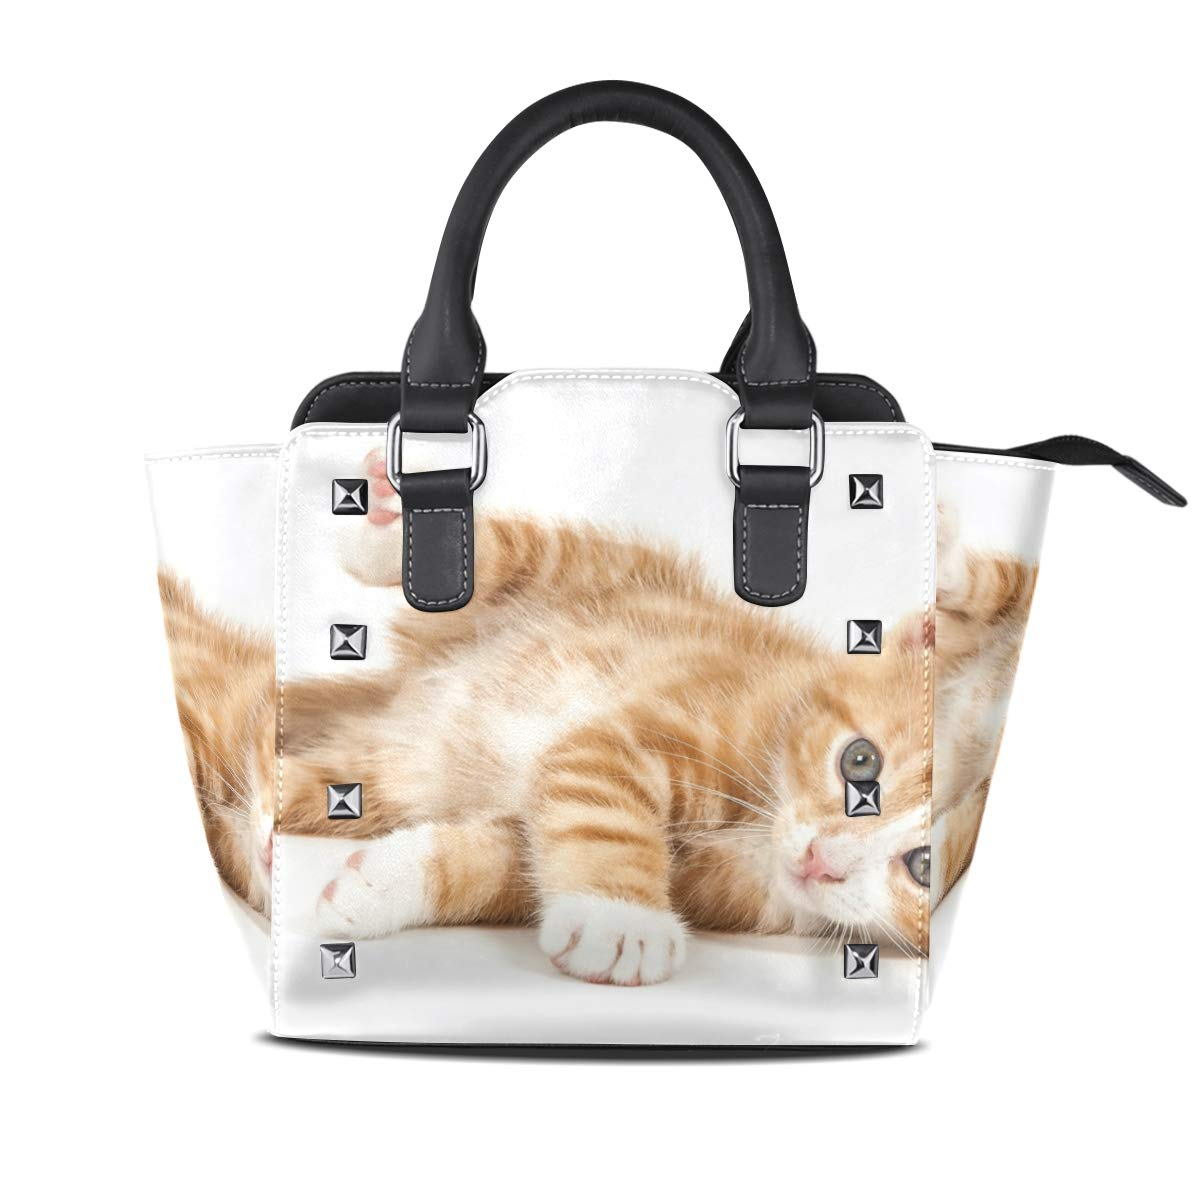 Design 5 Handbag Lazy Cat Licking The Sun On Ground Genuine Leather Tote Rivet Bag Shoulder Strap Top Handle Women